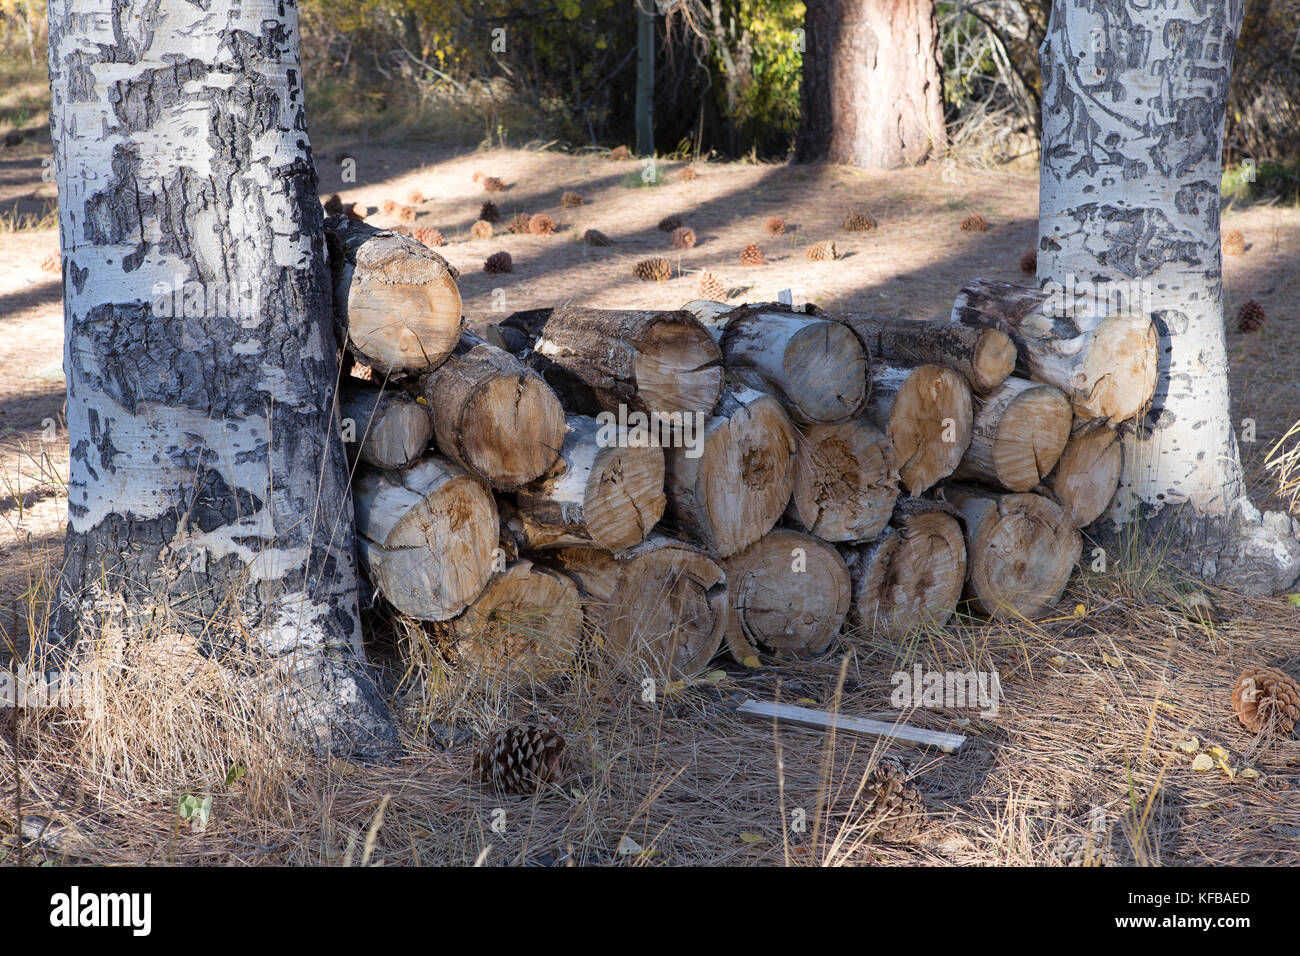 Firewood Woodpile between two trees on a forest floor Stock Photo